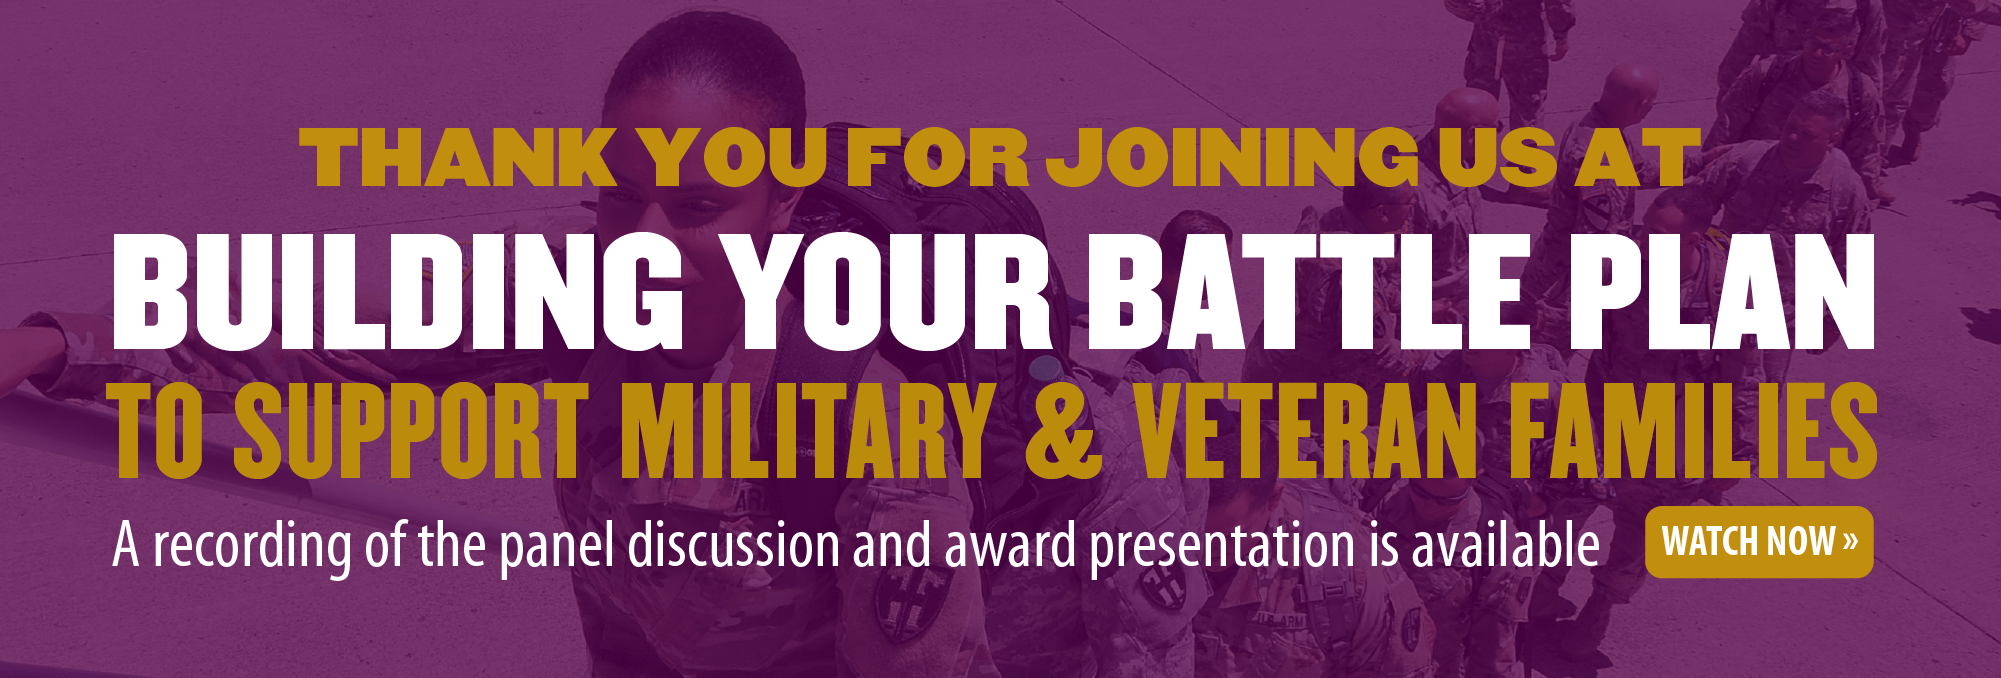 Thank you for joining us at Building Your Battle Plan to Support Military and Veteran Families. A recording of the panel discussion and award presentation is available. Watch now >